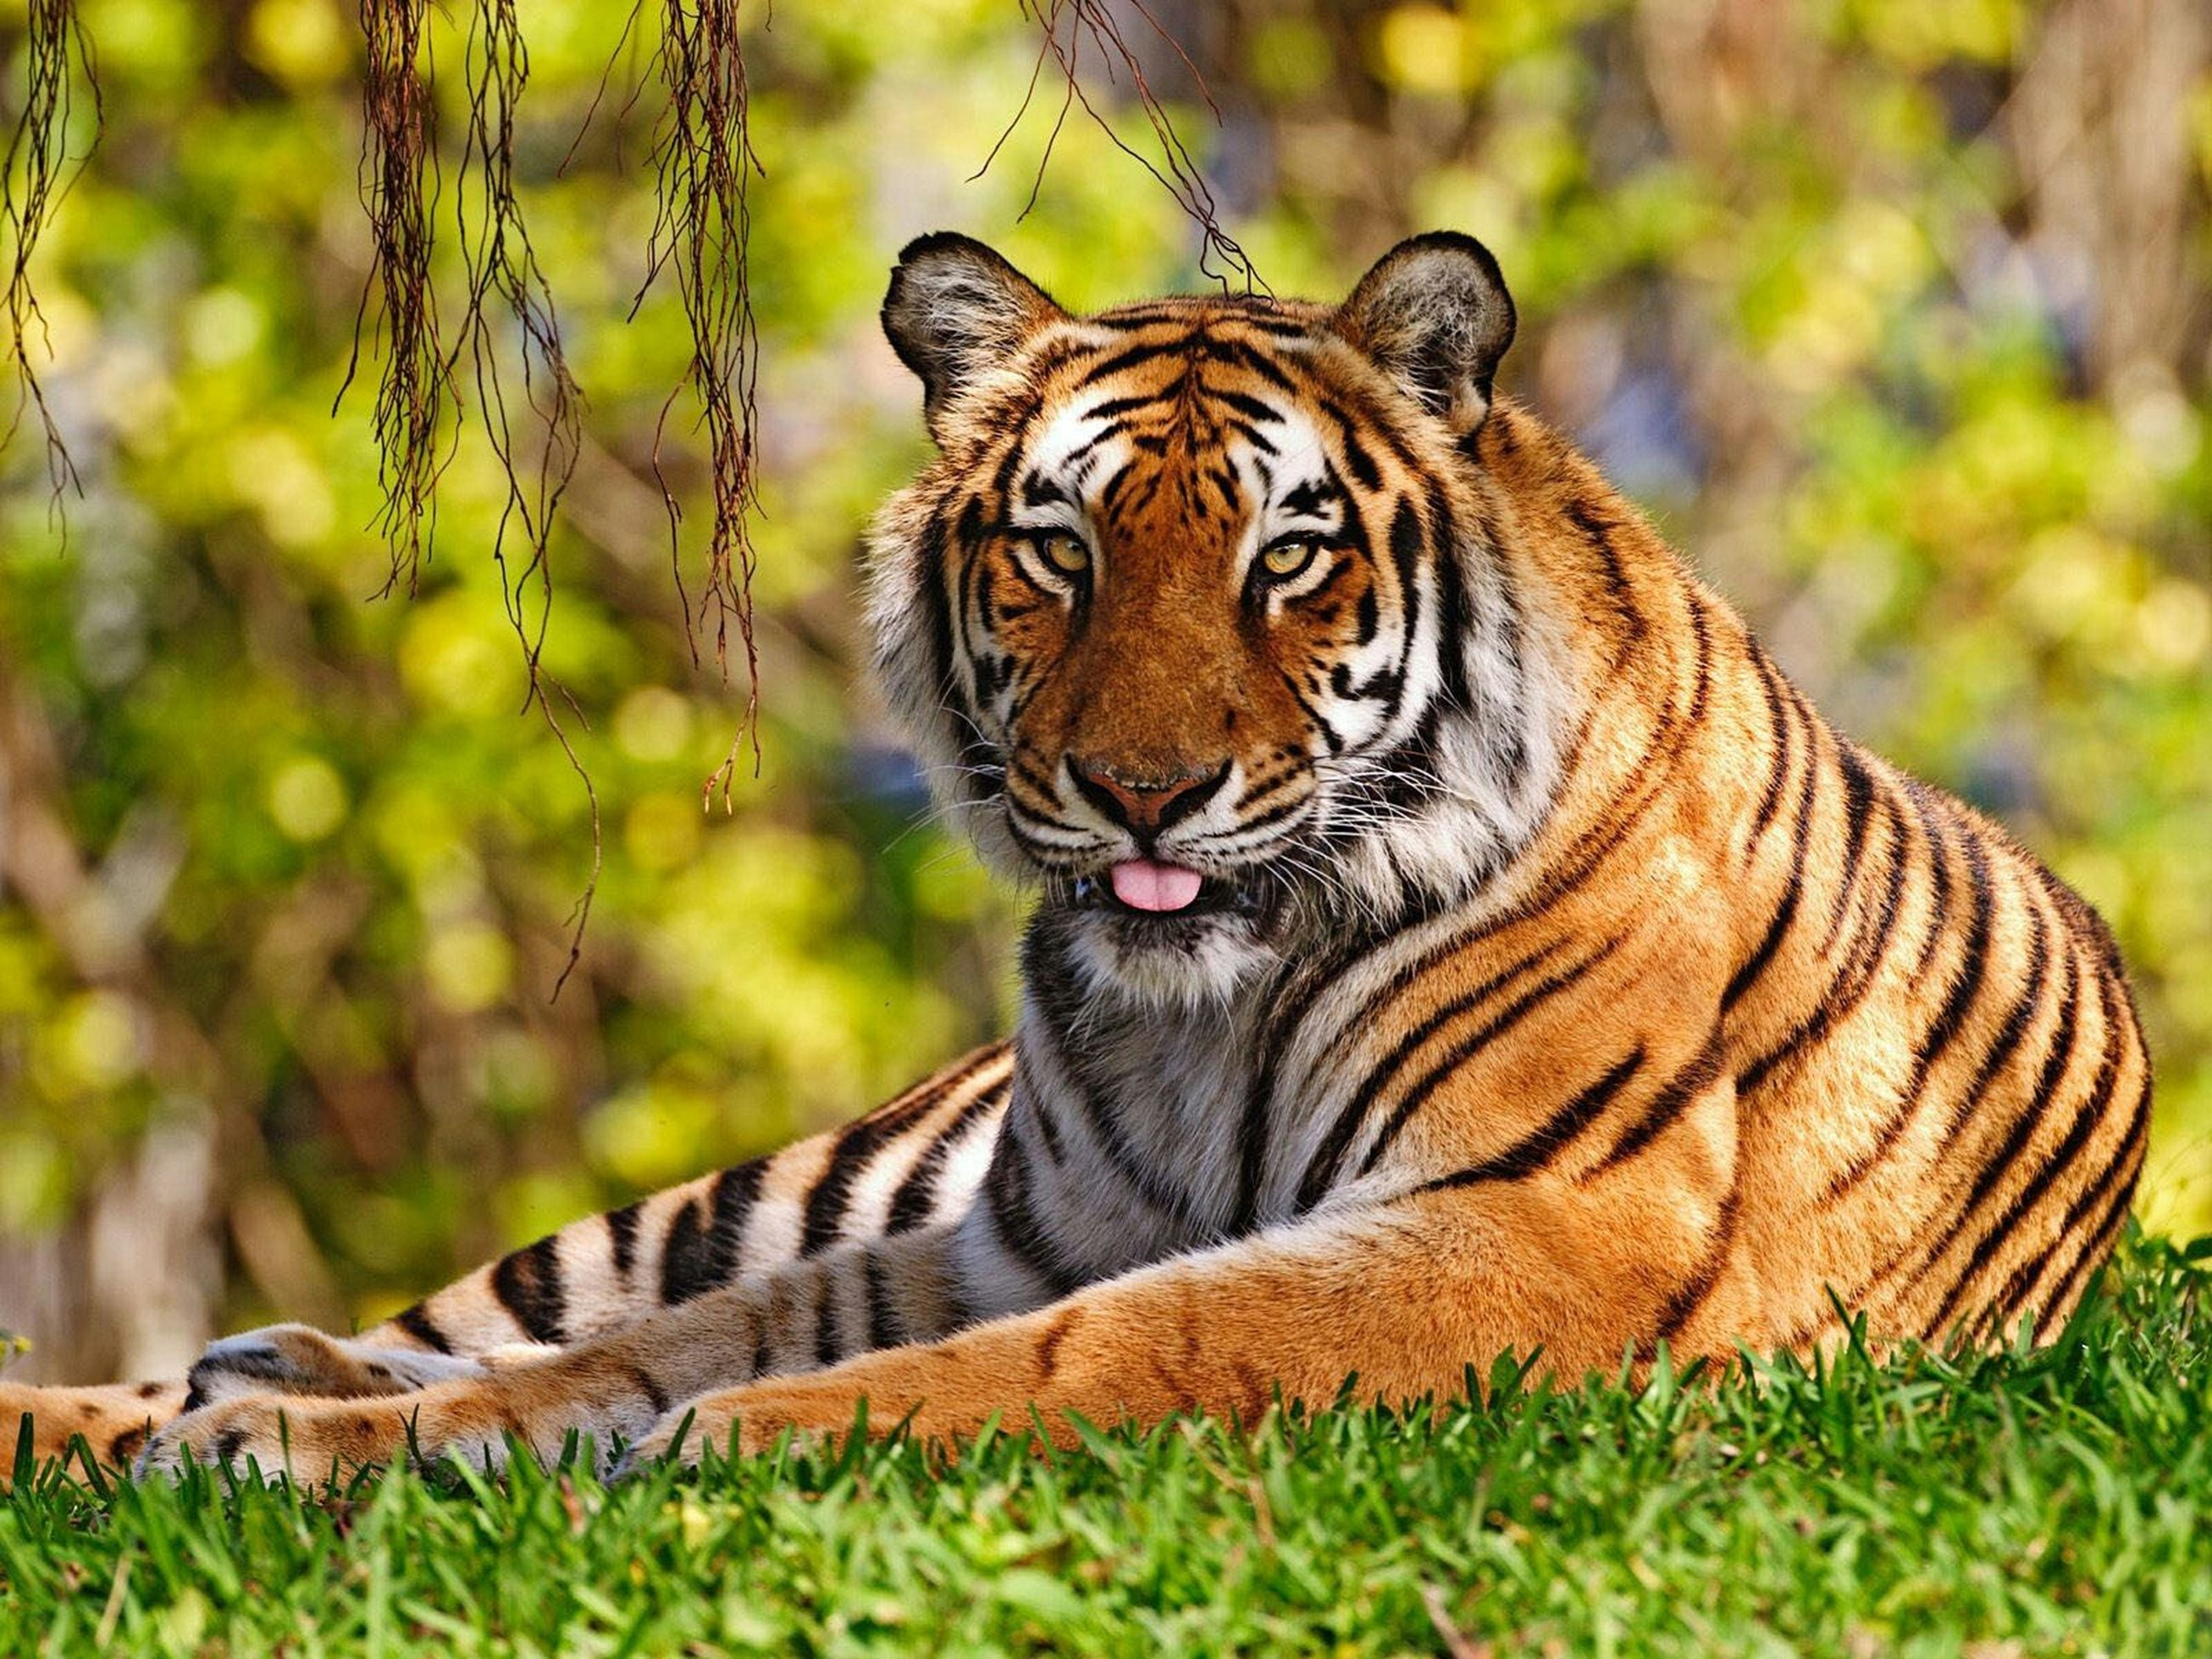 animal themes, one animal, tiger, mammal, animal markings, wildlife, animals in the wild, focus on foreground, big cat, animal head, safari animals, undomesticated cat, close-up, endangered species, natural pattern, leopard, outdoors, zoo, portrait, zoology